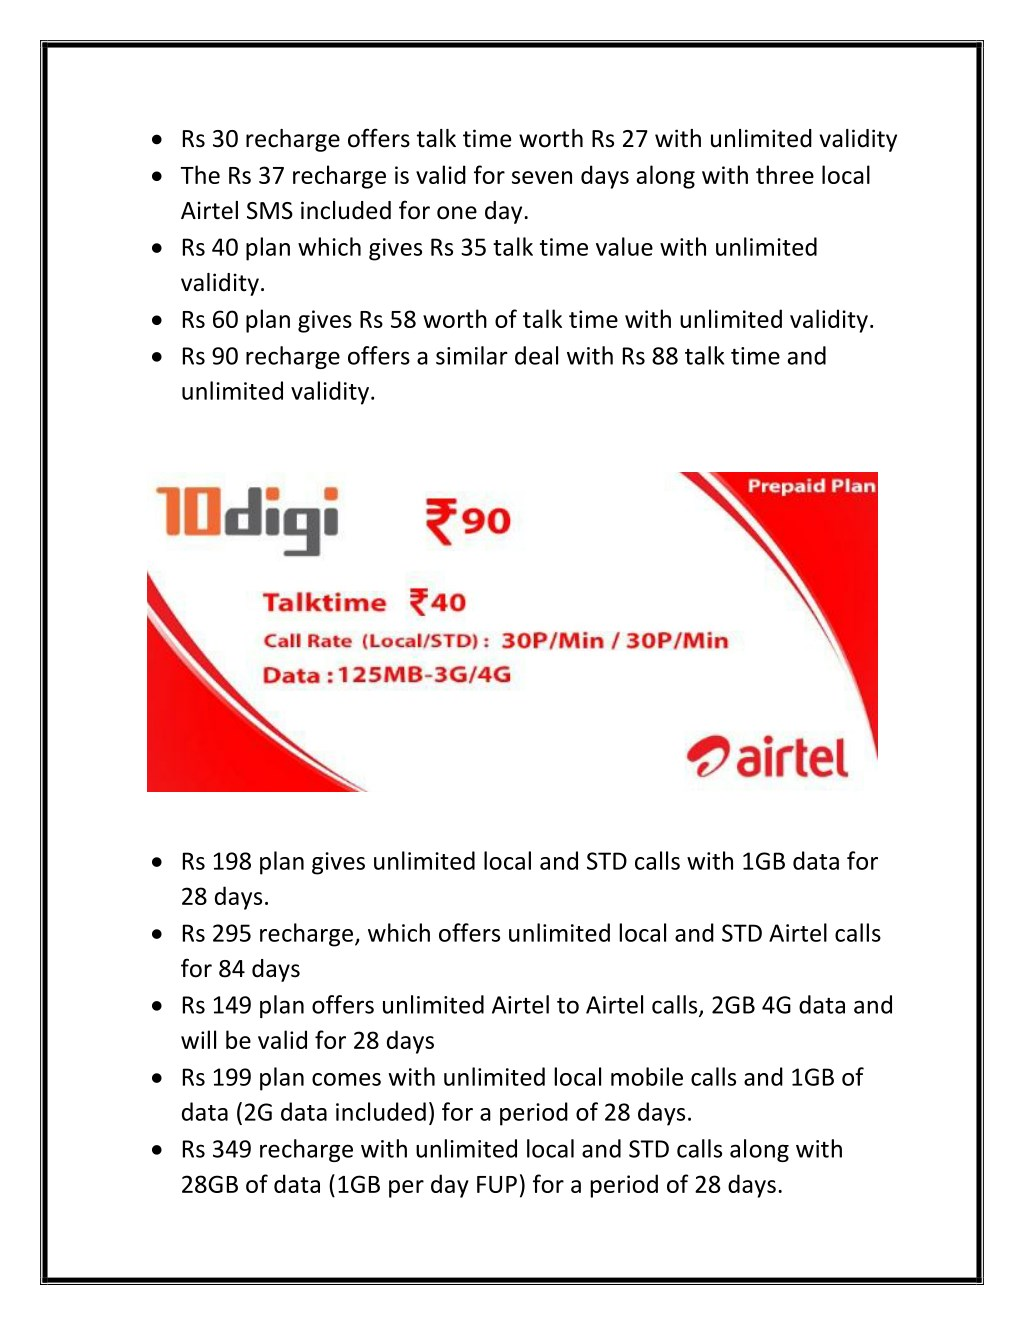 PPT - Airtel 4G VoLTE Services Launched Today, Now Live in Mumbai